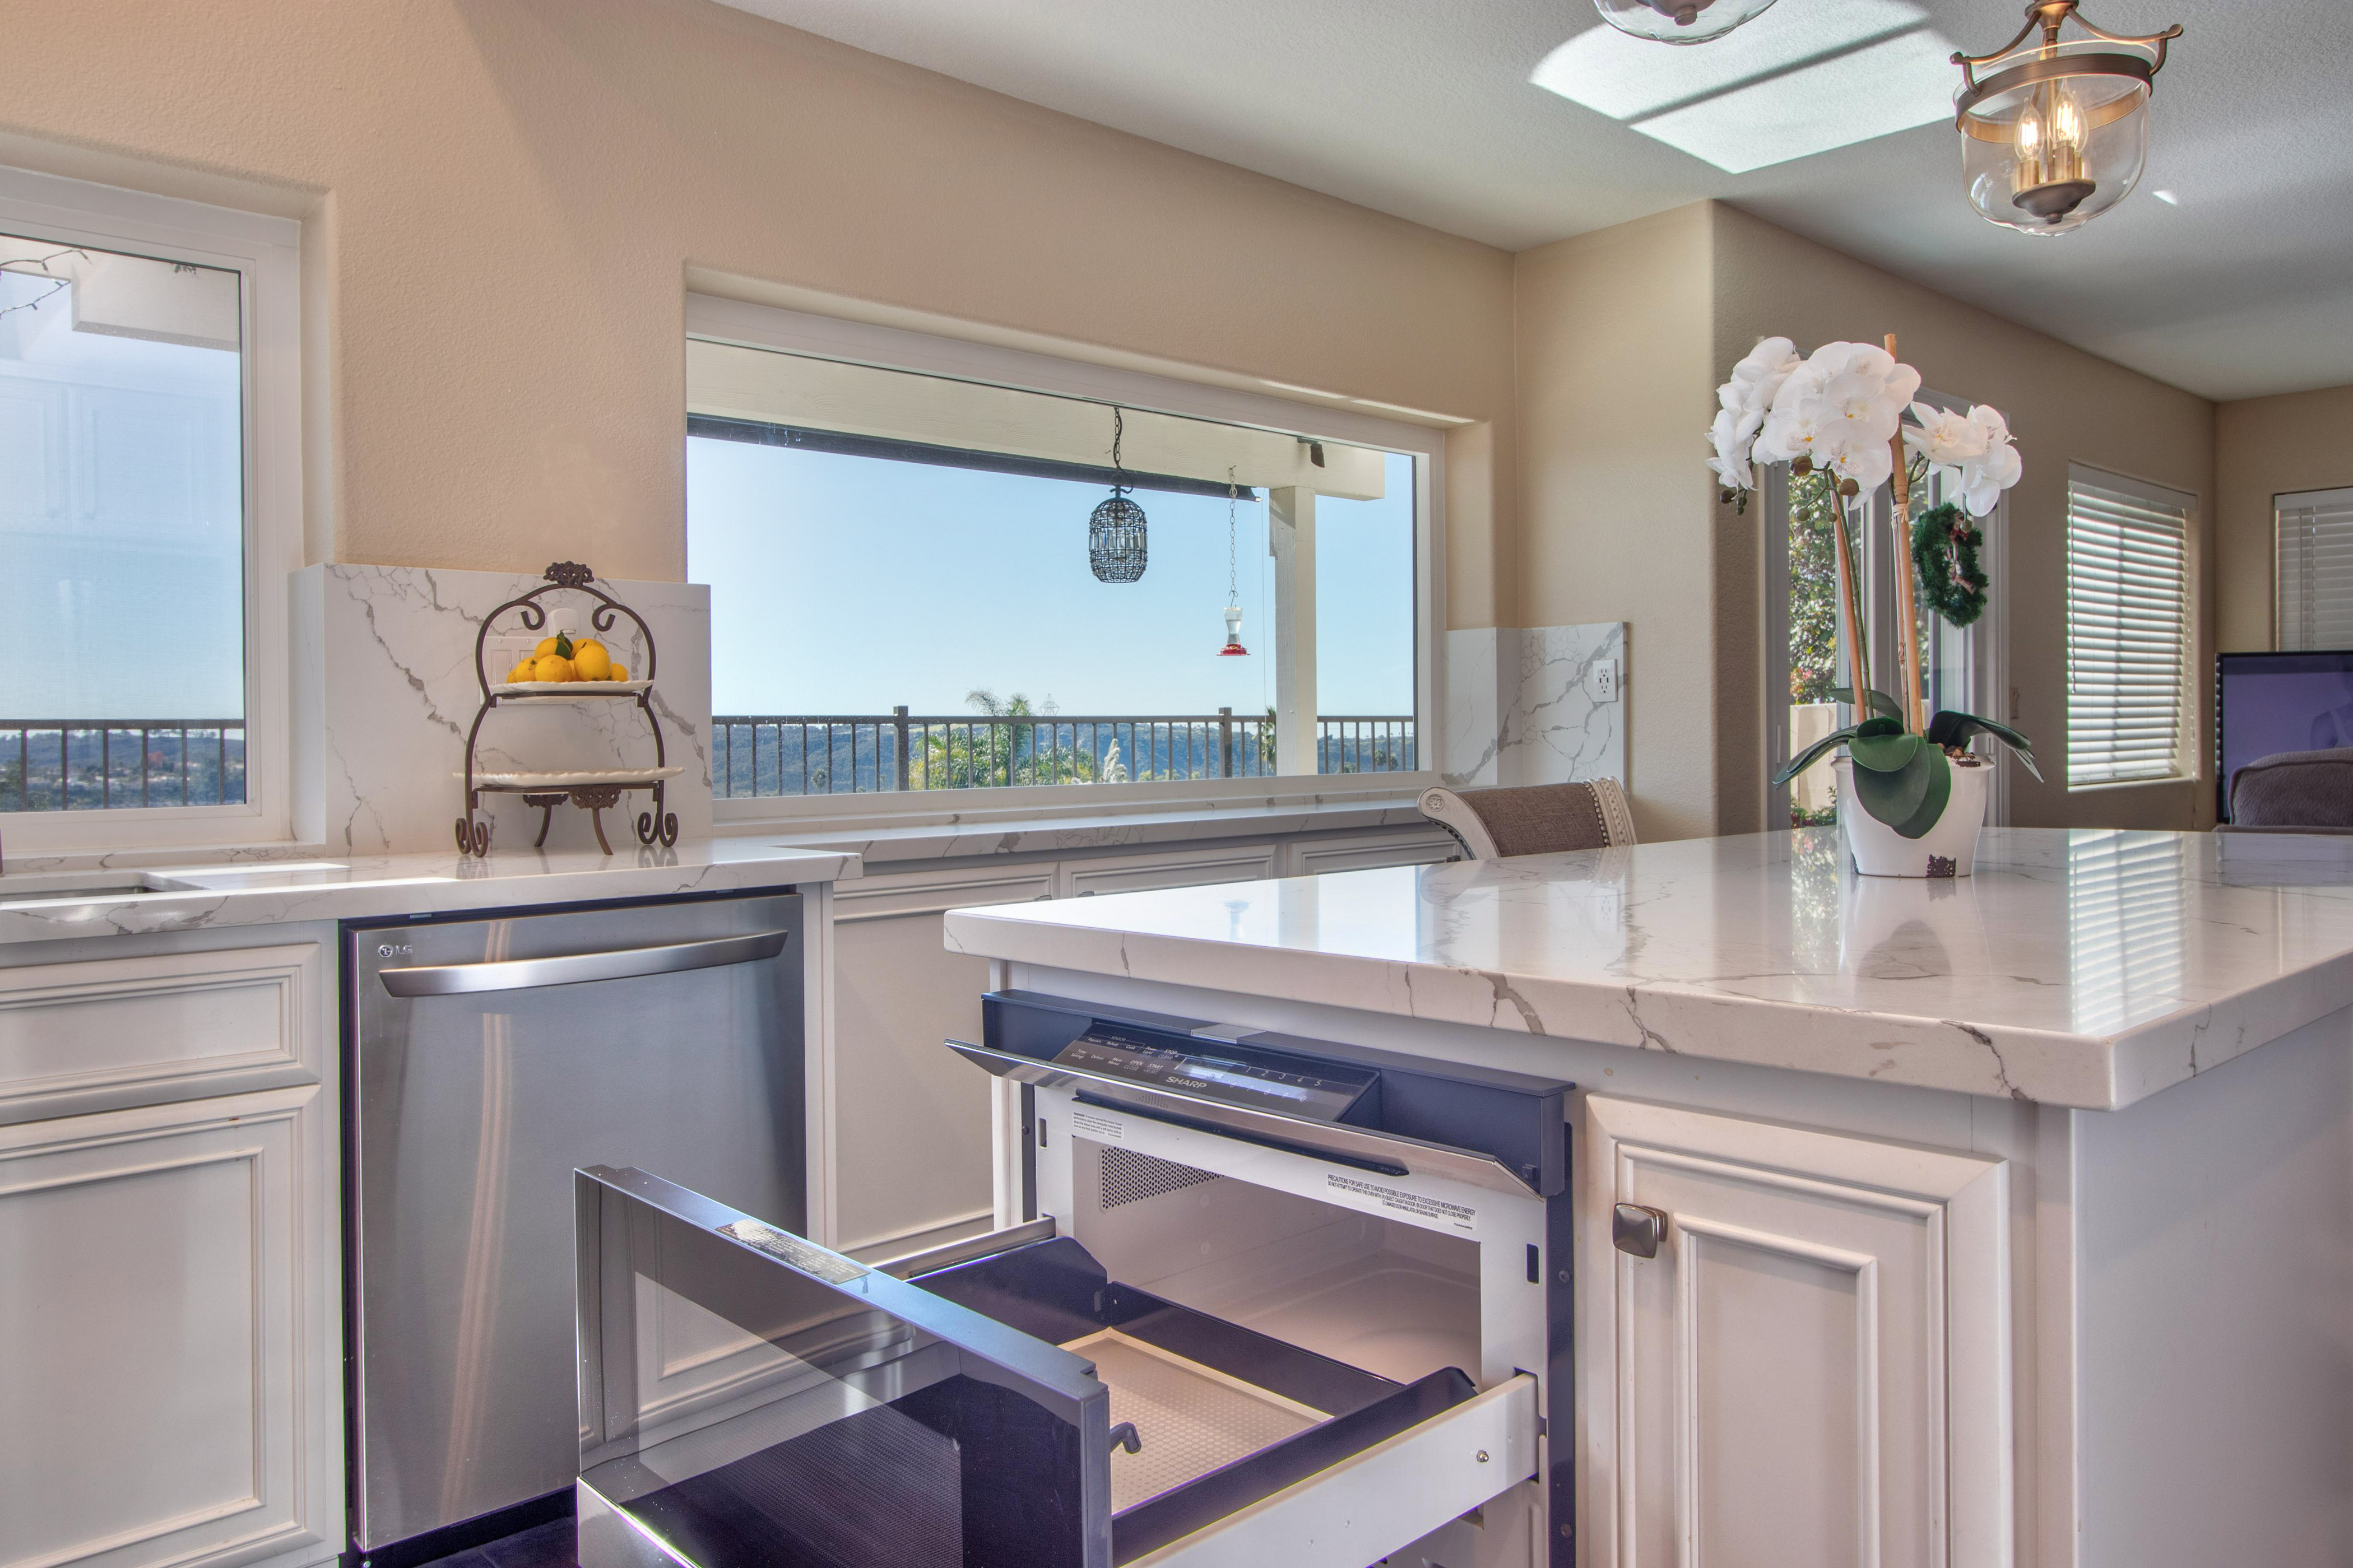 Carlsbad-Cabinet-Refacing-Project-15